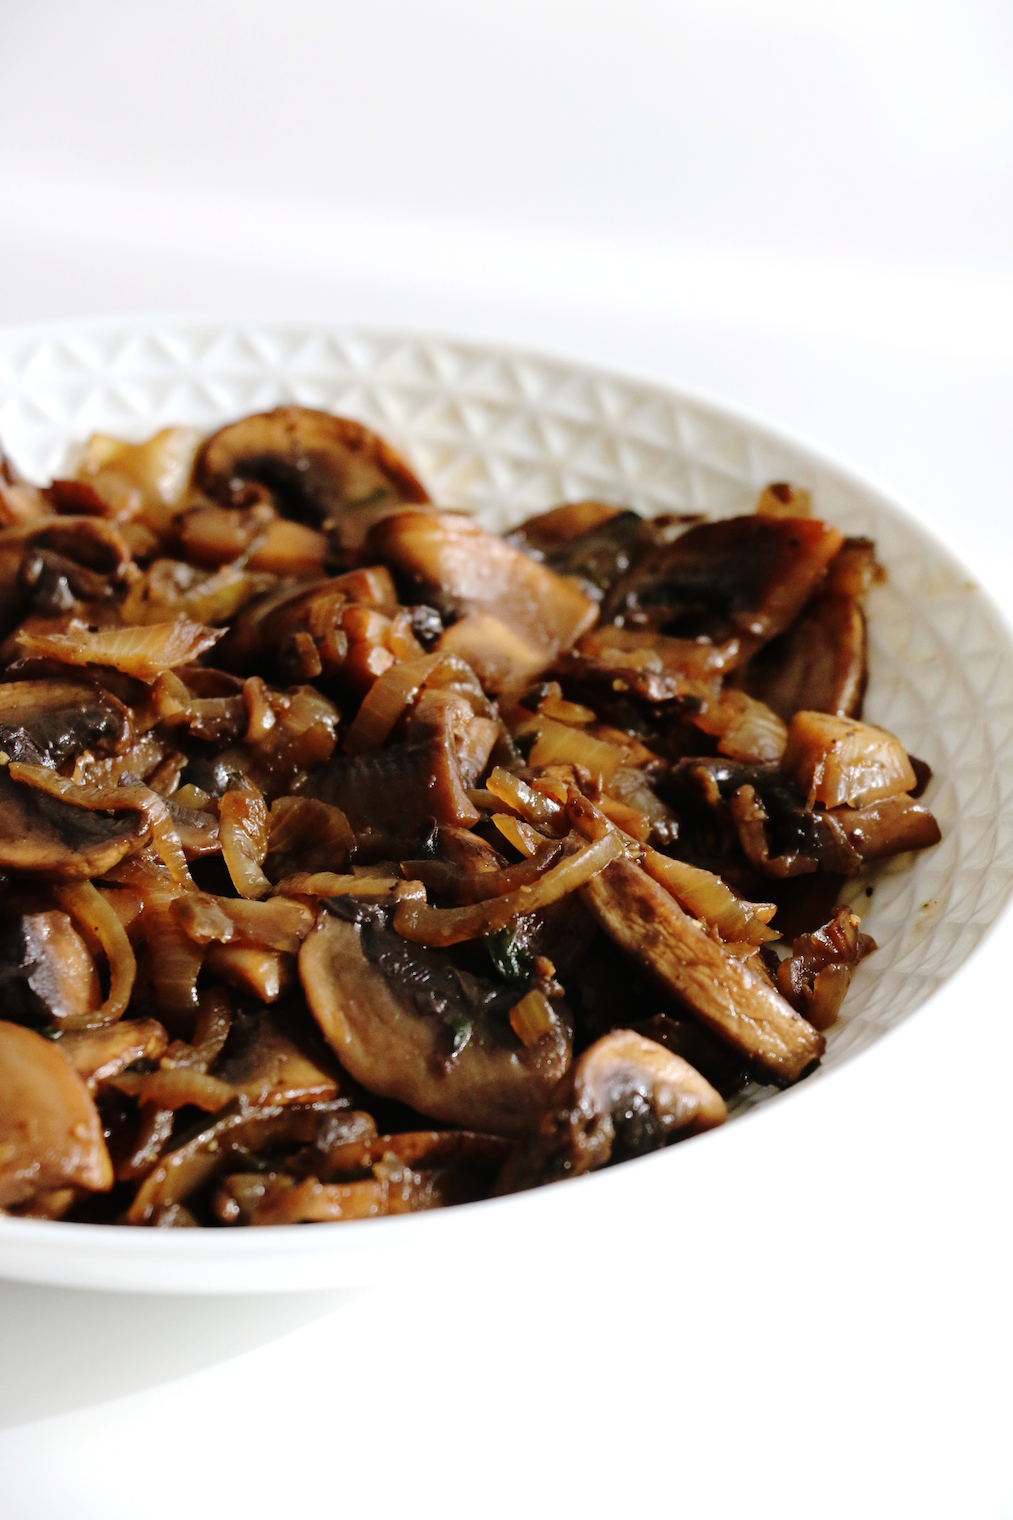 cooked mushroom and caramelized onion salad | www.savormania.com